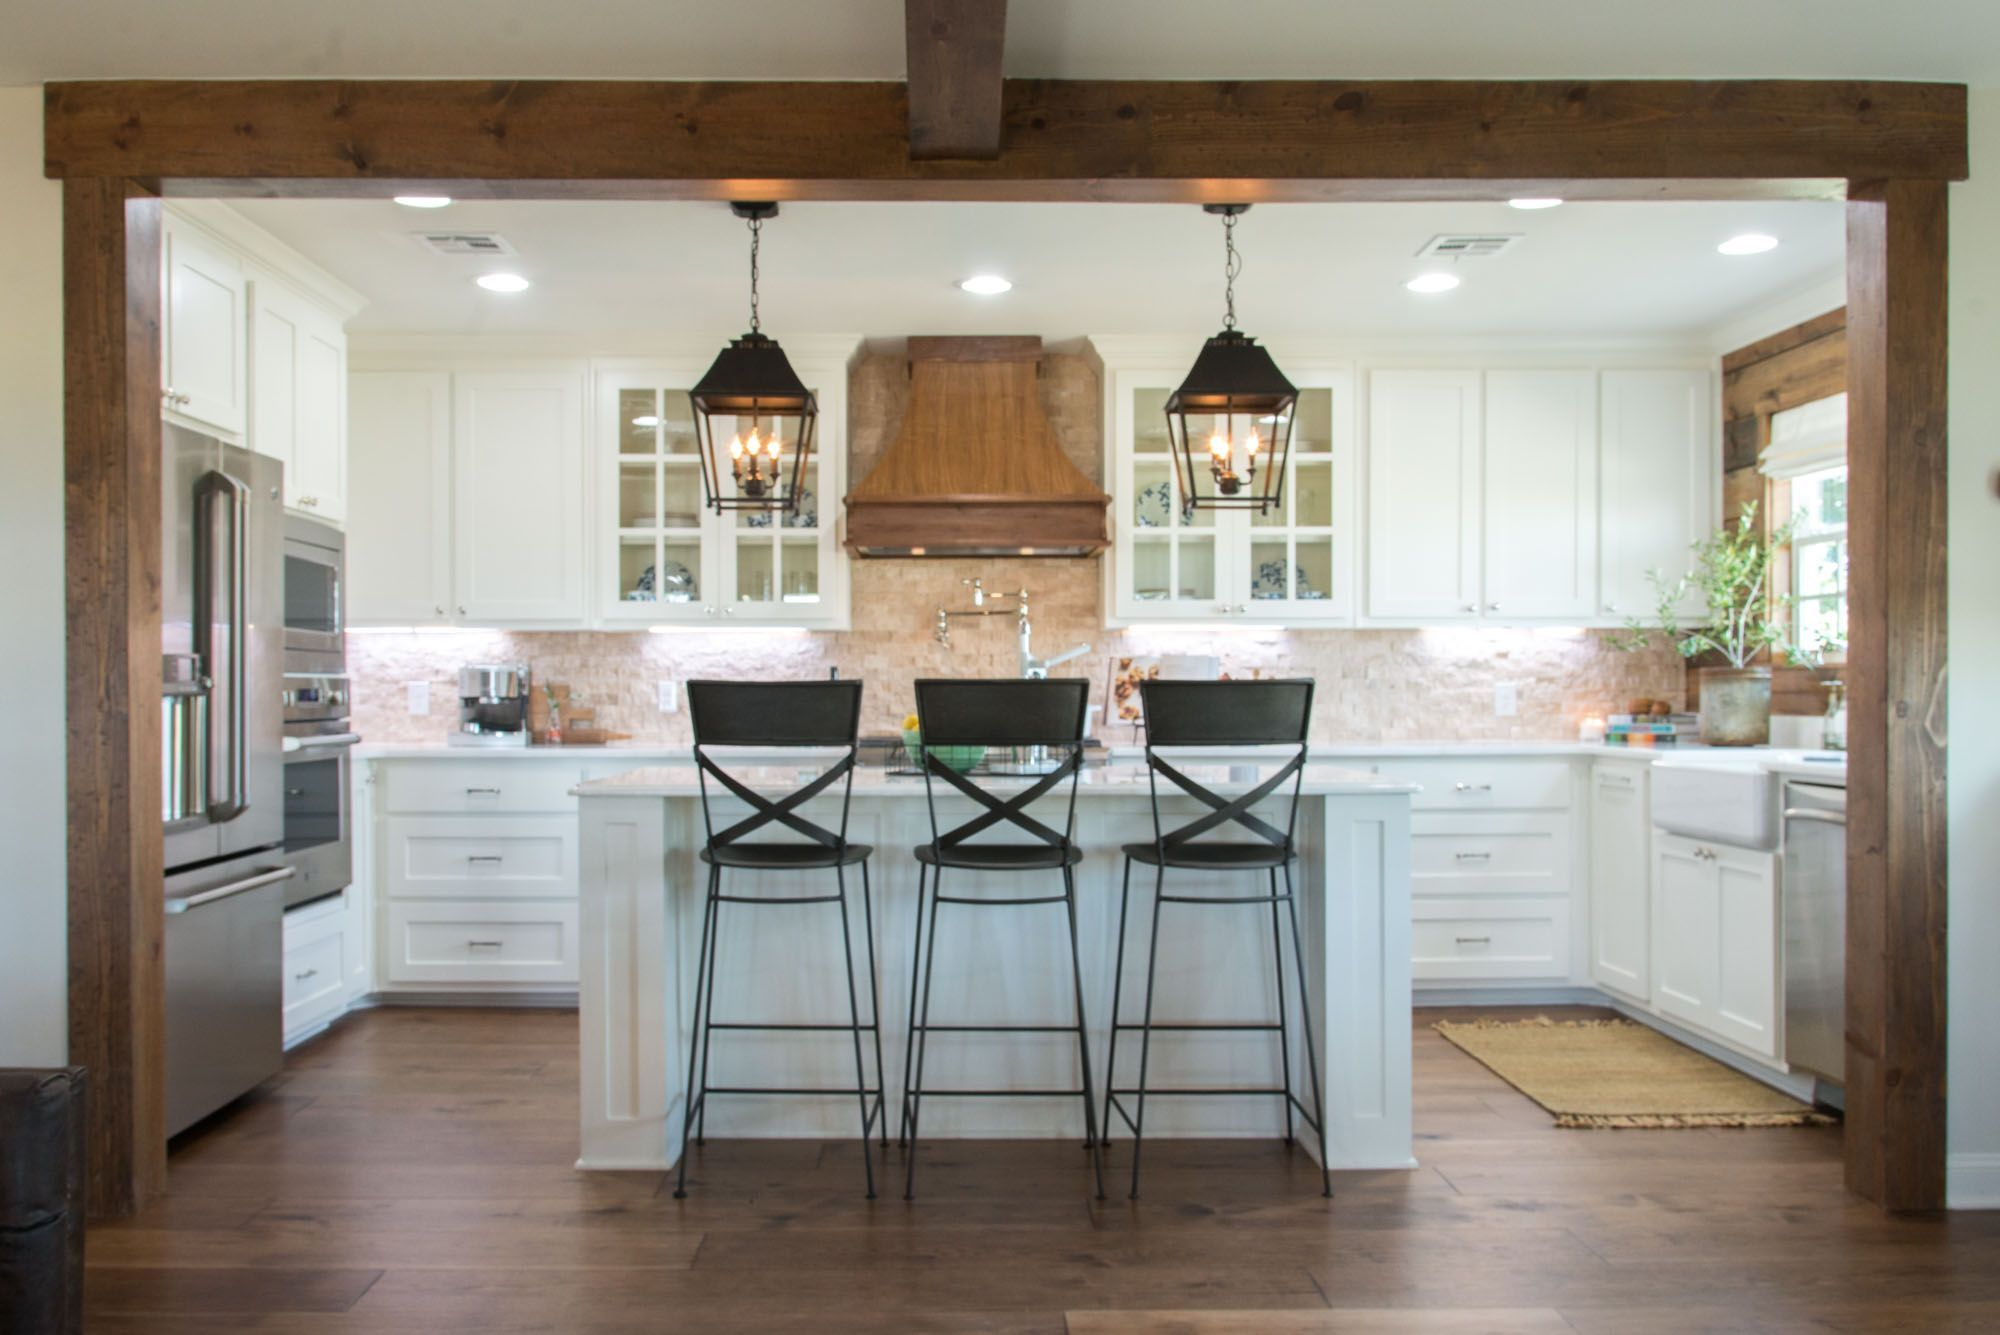 Image result for joanna gaines kitchen pinterest | Home ...